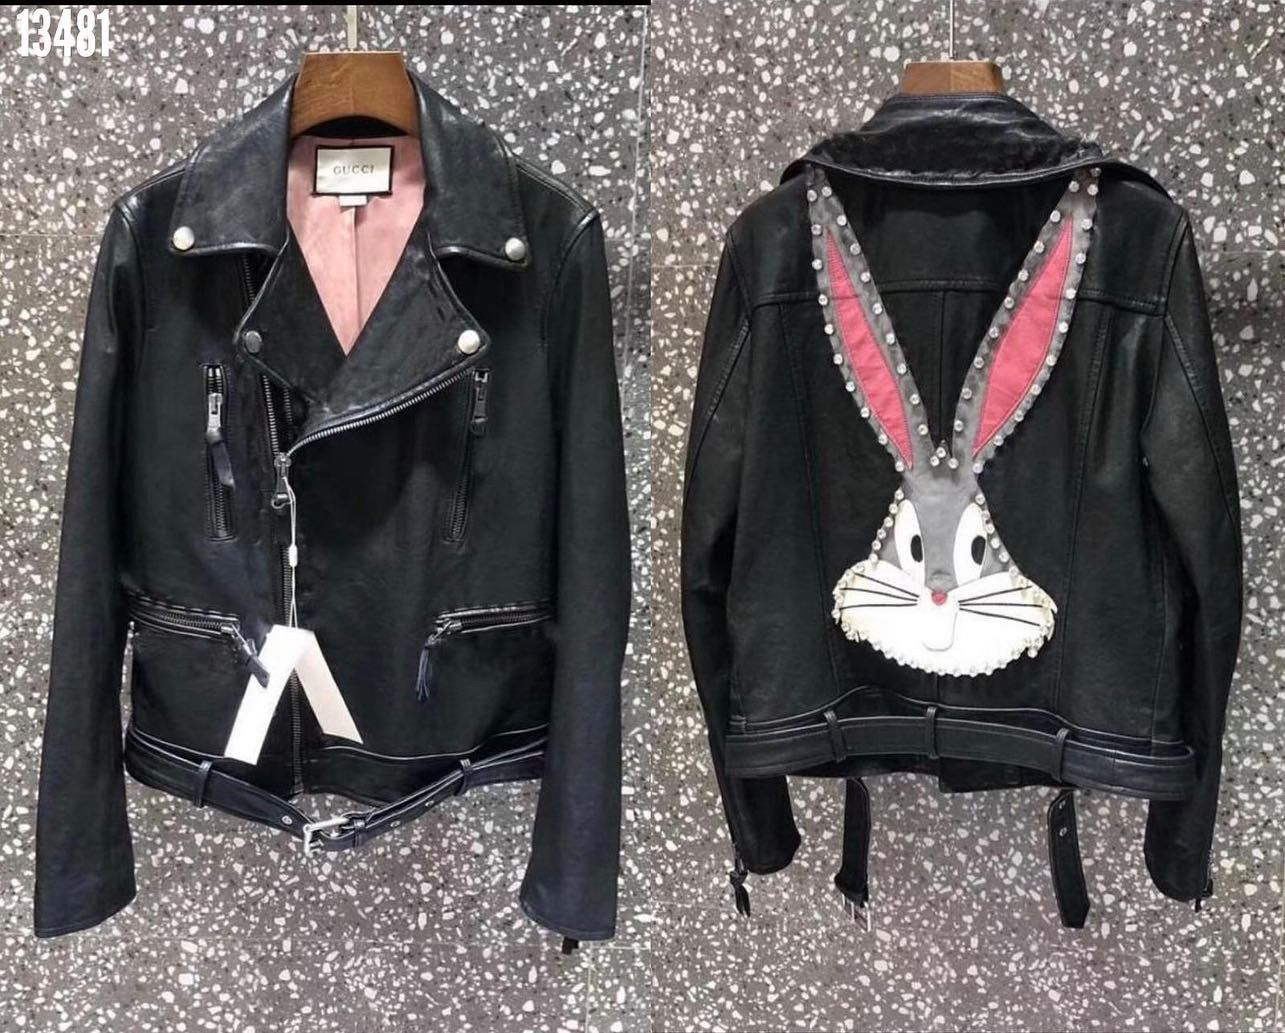 Model 2379 149 90tl Hera Deri Nakisli Deri Mont S M L Bedenler Siparis Ve Bilgi Icin Kapida Nakit Yada Kredi Karti Il In 2020 Leather Jacket Model Fashion